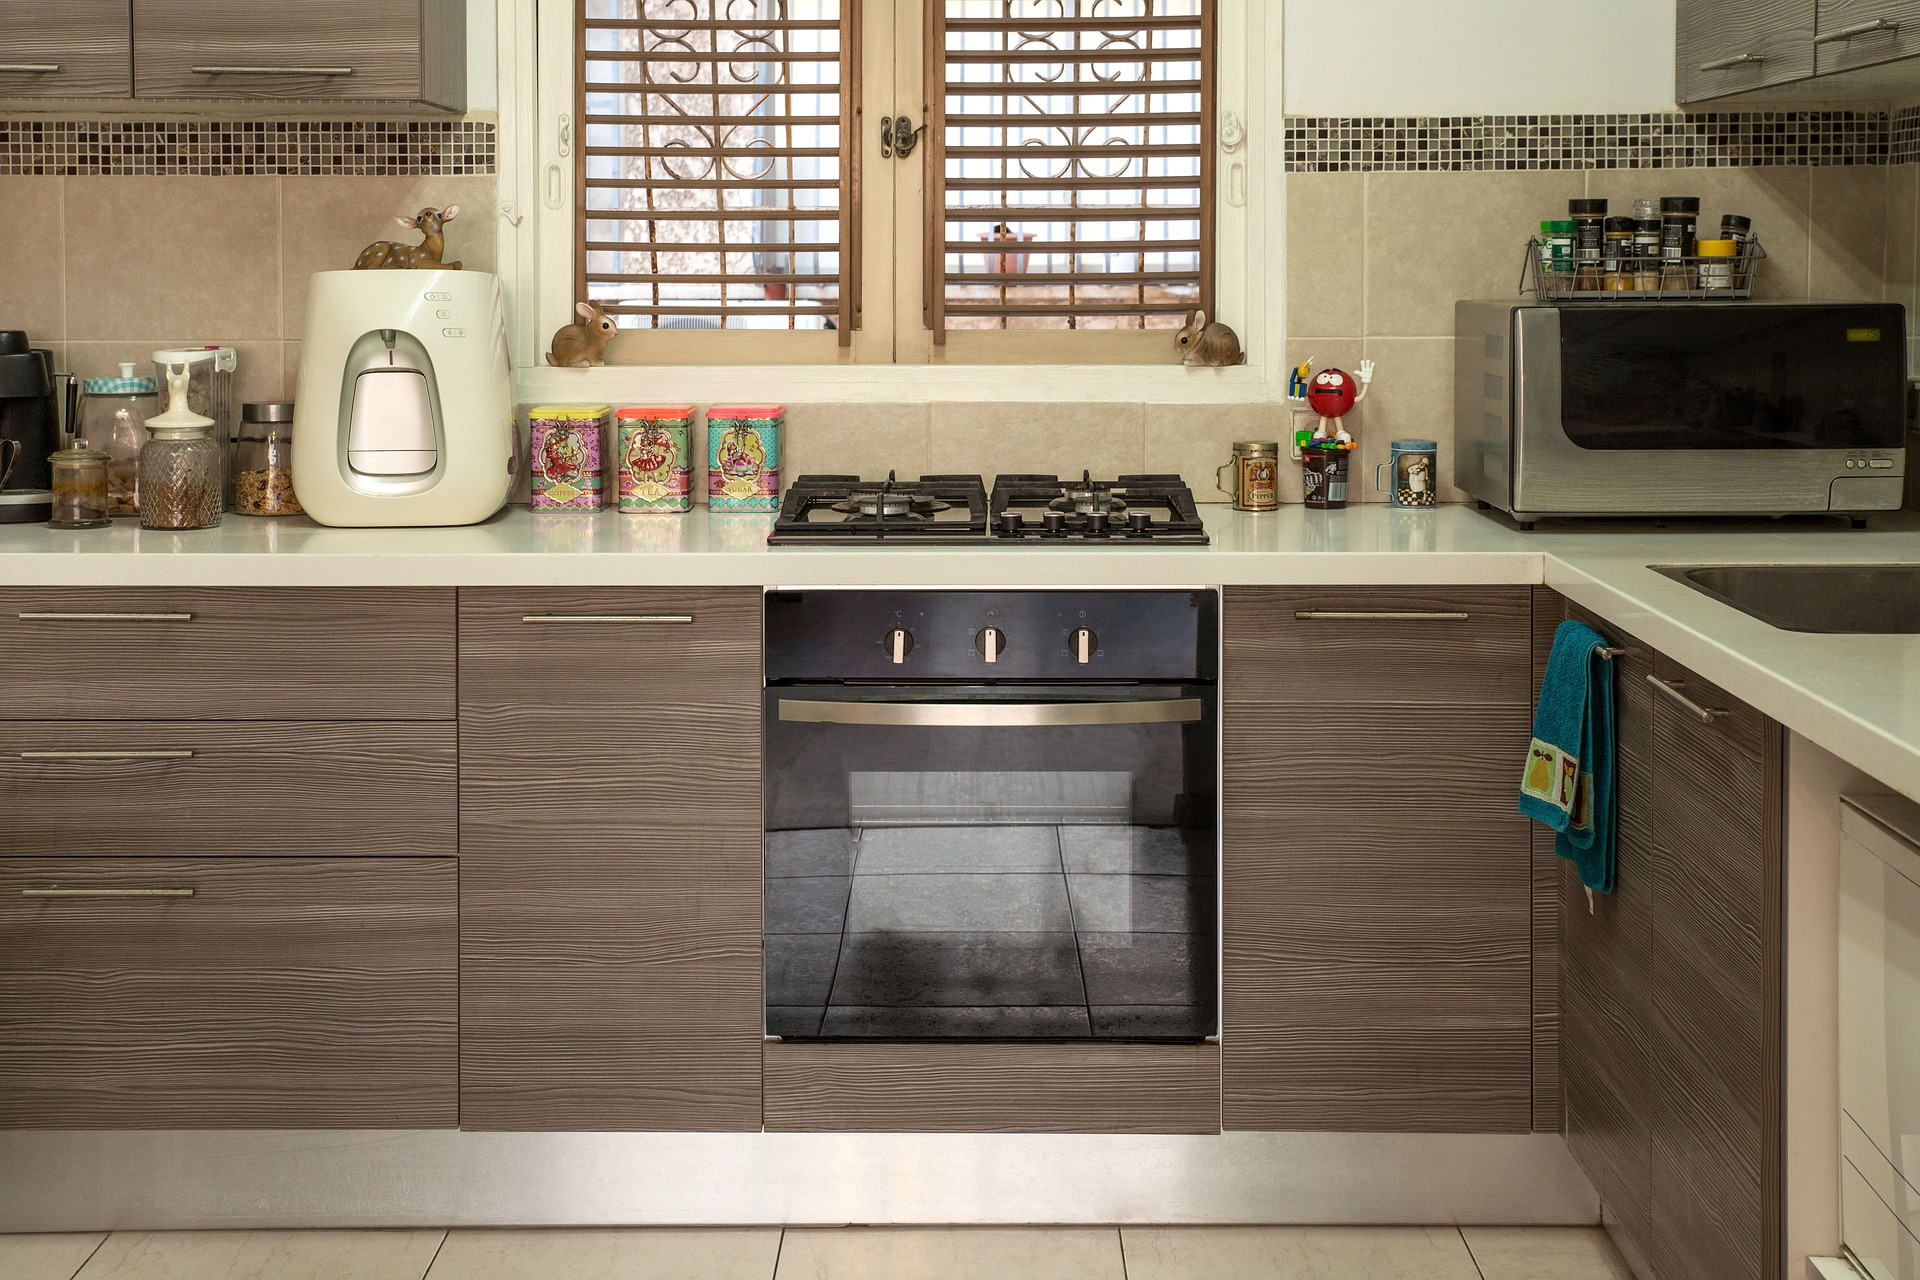 Stunning Come Disegnare Una Cucina Componibile Images - Home Ideas ...